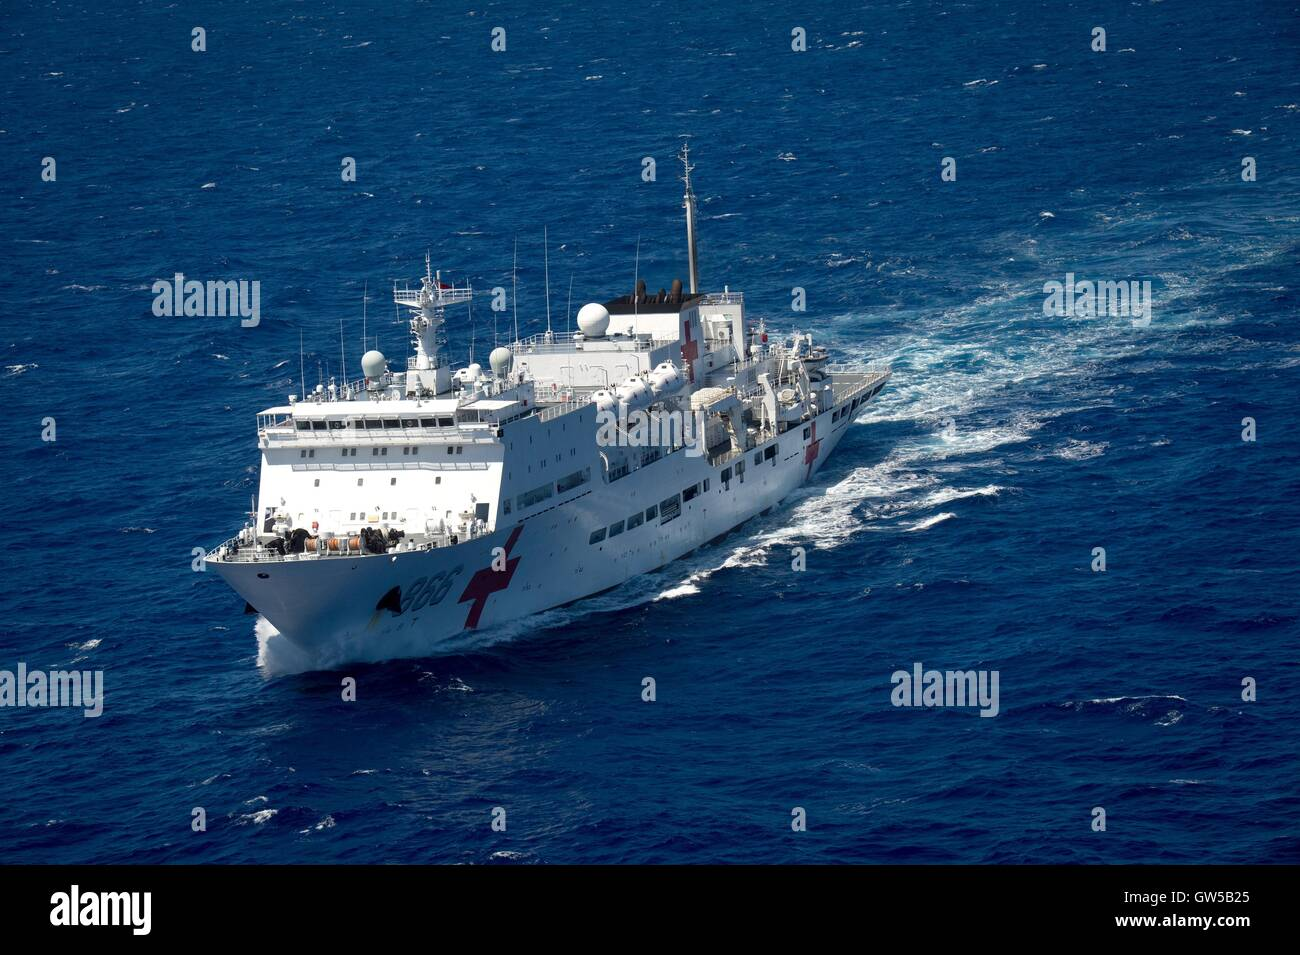 Chinese Navy hospital ship Peace Ark steams in close formation during the Rim of the Pacific exercise June 22, 2016 - Stock Image